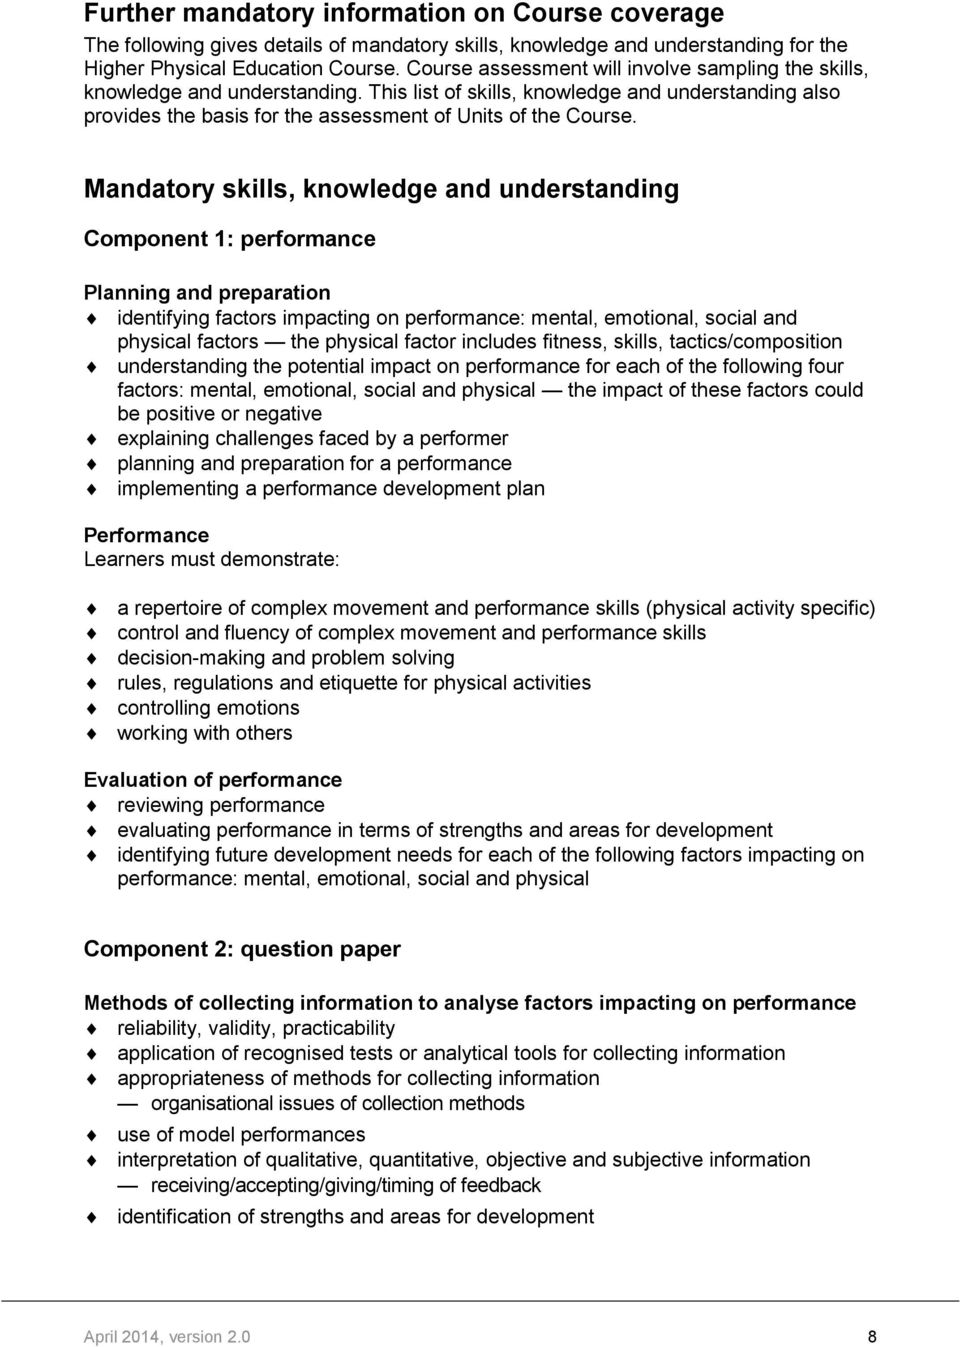 higher physical education past papers